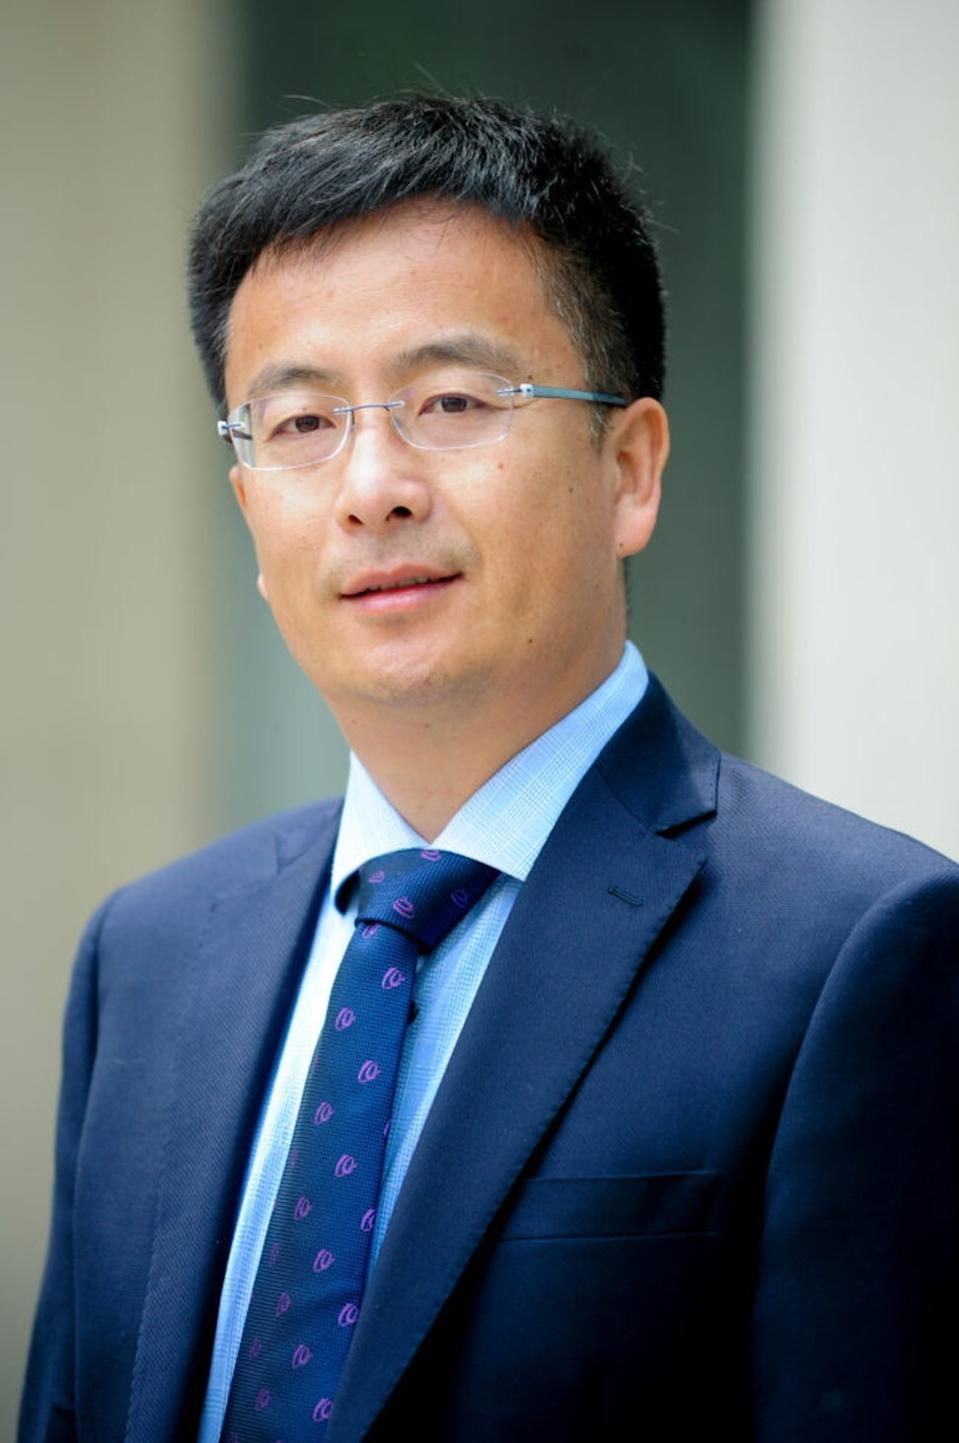 Max Shen Zuojun is the head of the department of industrial engineering at Tsinghua. Photo: Handout